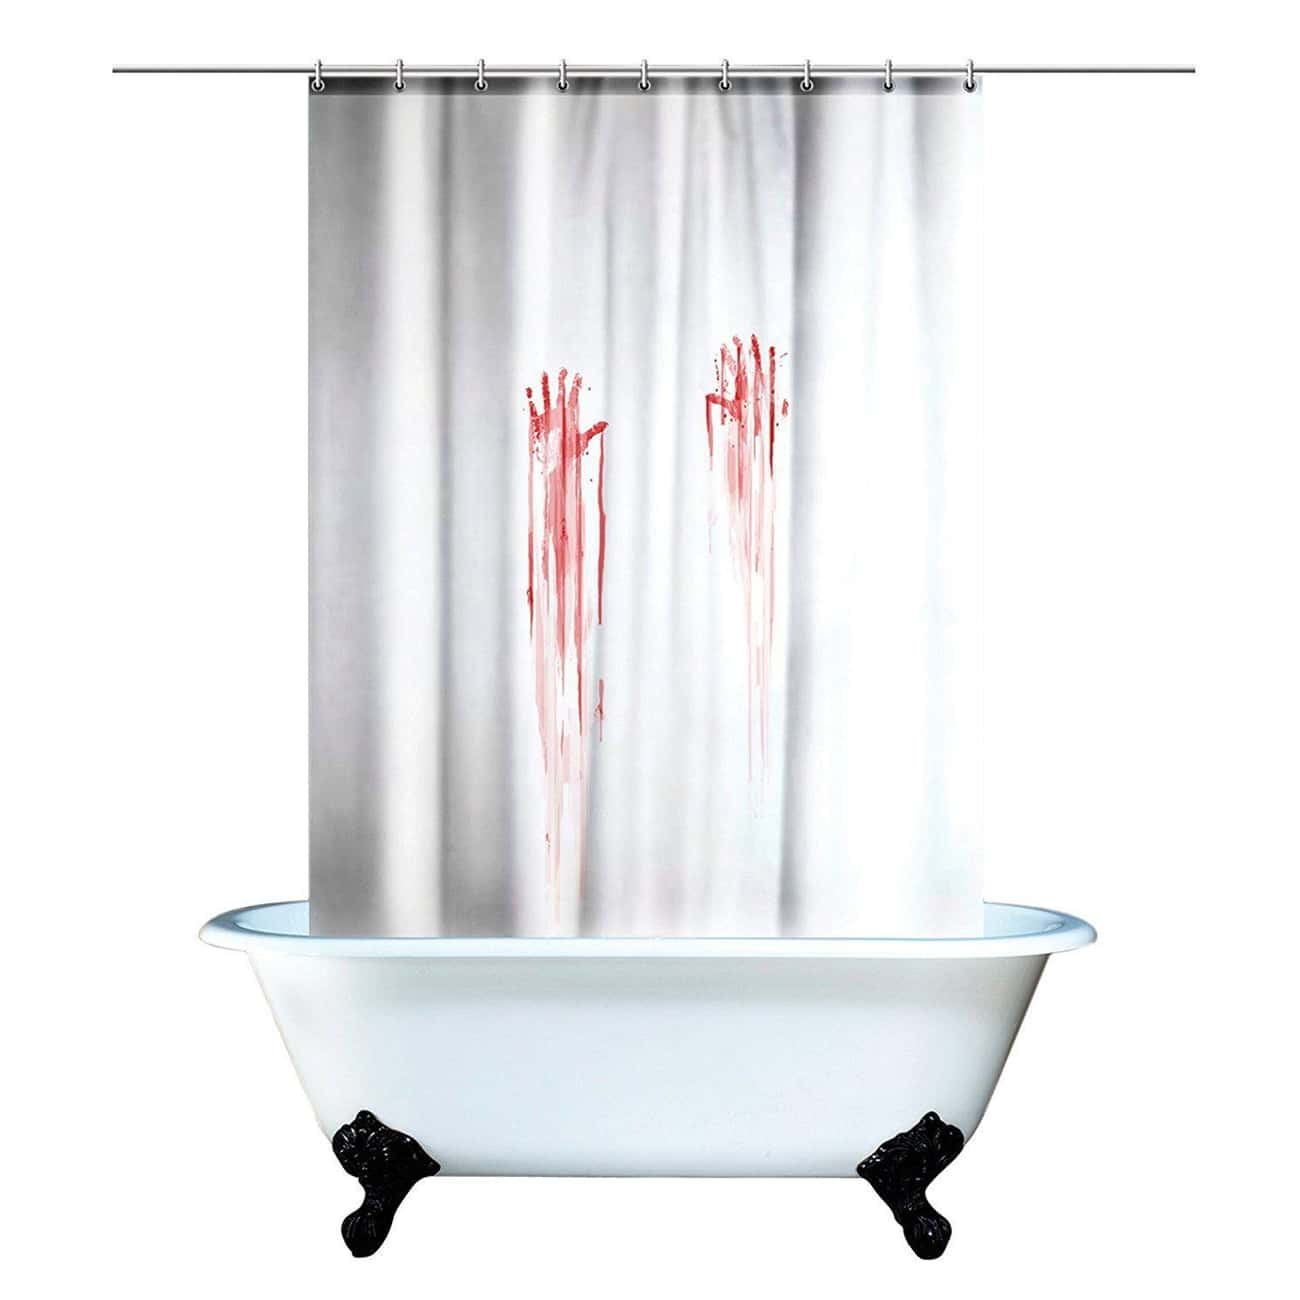 Spinning Hat Bloodbath Shower  is listed (or ranked) 2 on the list Unusual Gifts Perfect For People Who Love Any And All Things Creepy